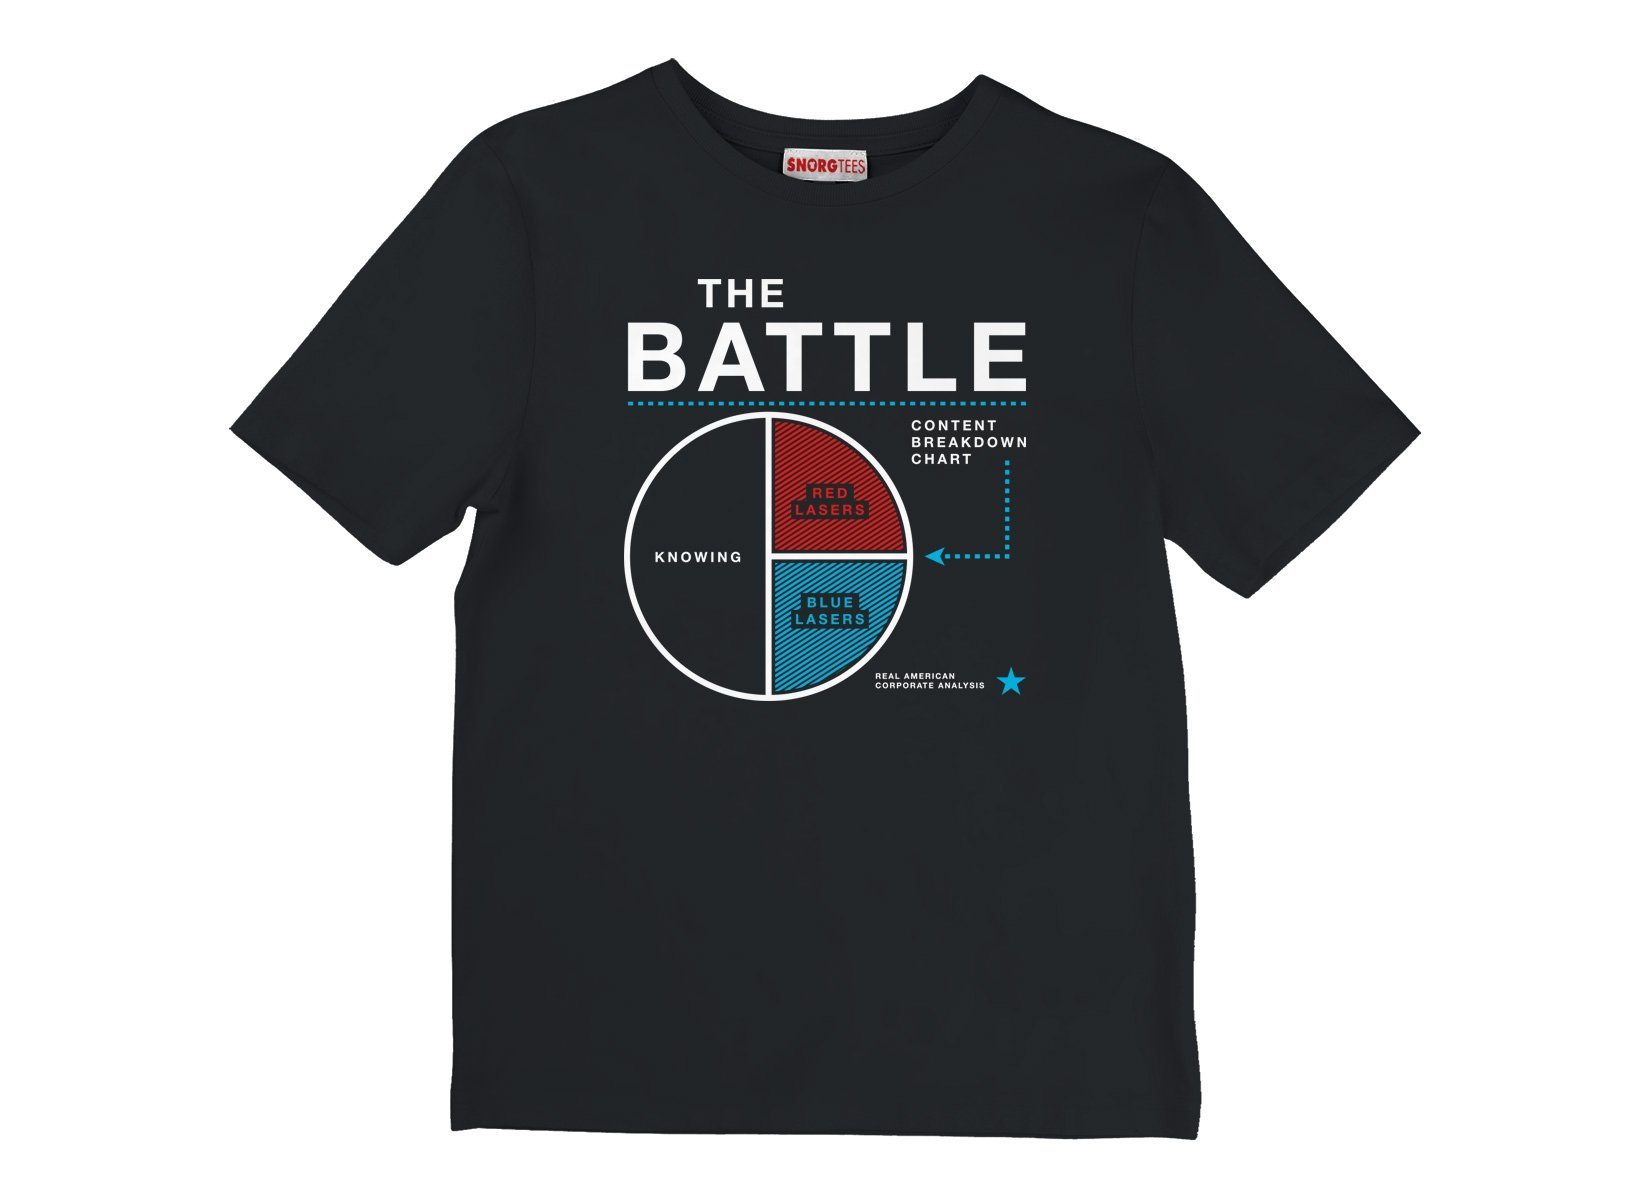 The Battle on Kids T-Shirt